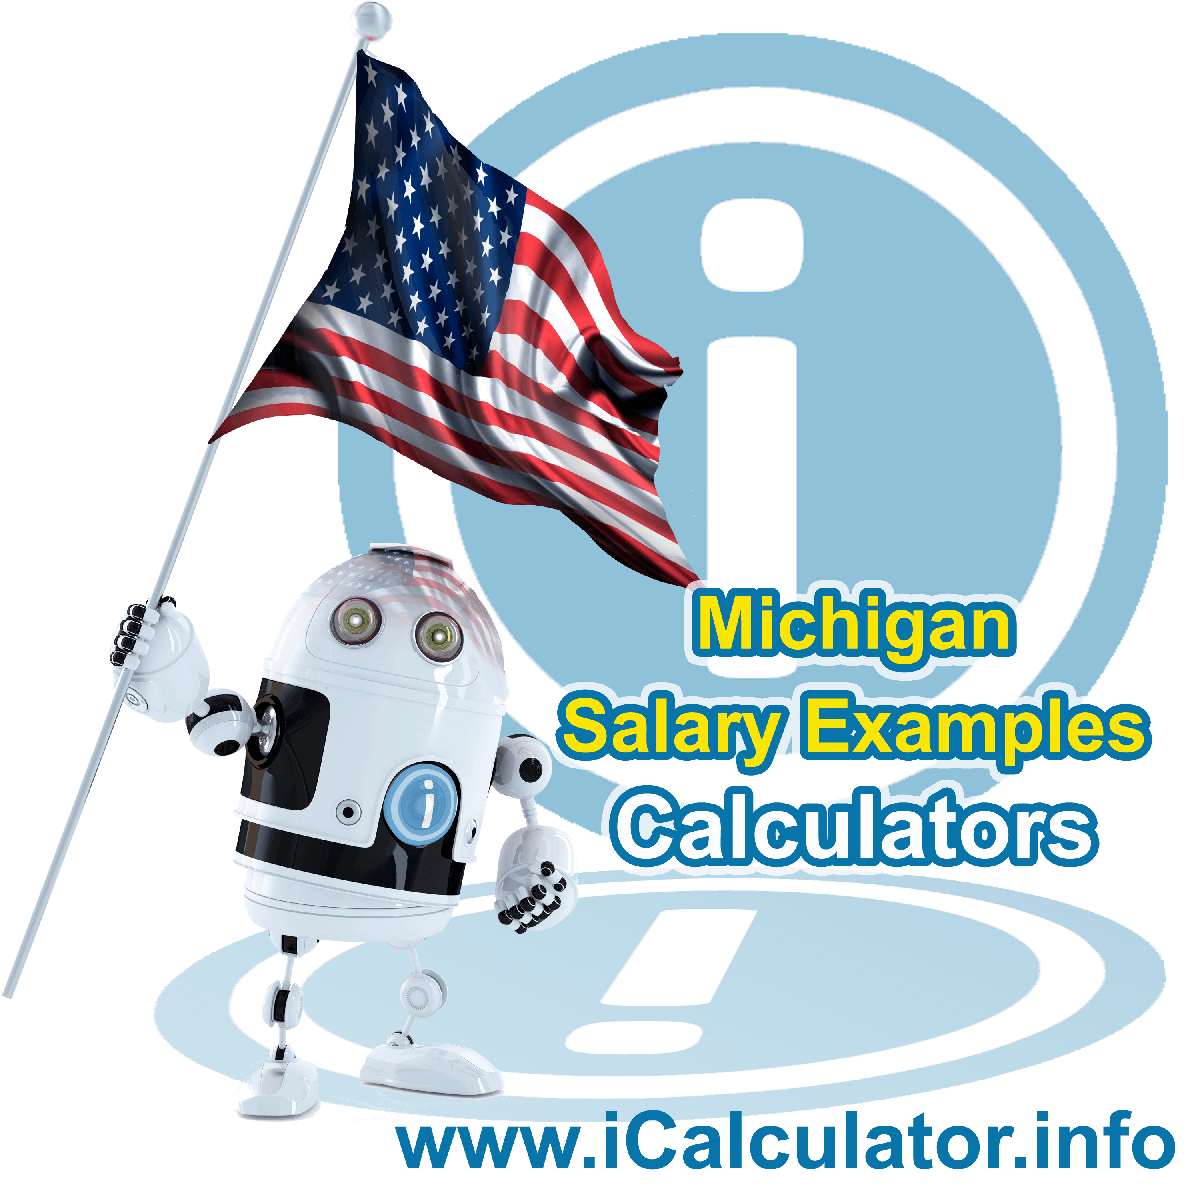 Michigan Salary Example for $110,000.00 in 2020 | iCalculator | $110,000.00 salary example for employee and employer paying Michigan State tincome taxes. Detailed salary after tax calculation including Michigan State Tax, Federal State Tax, Medicare Deductions, Social Security, Capital Gains and other income tax and salary deductions complete with supporting Michigan state tax tables